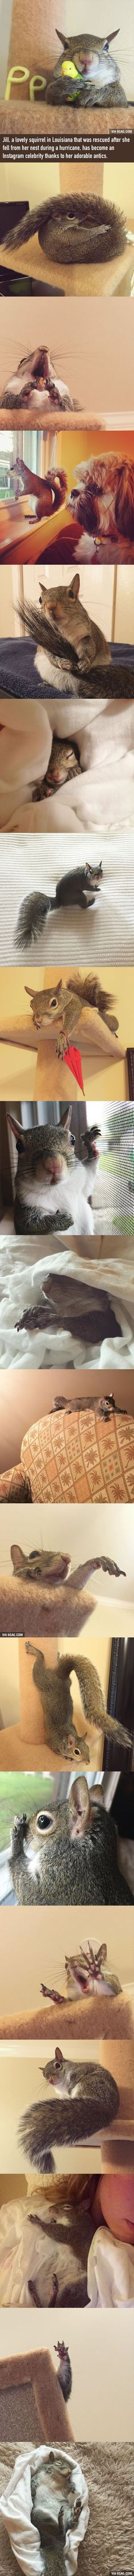 Jill The Squirrel rescued after hurricane becomes family's cutest member - 9GAG